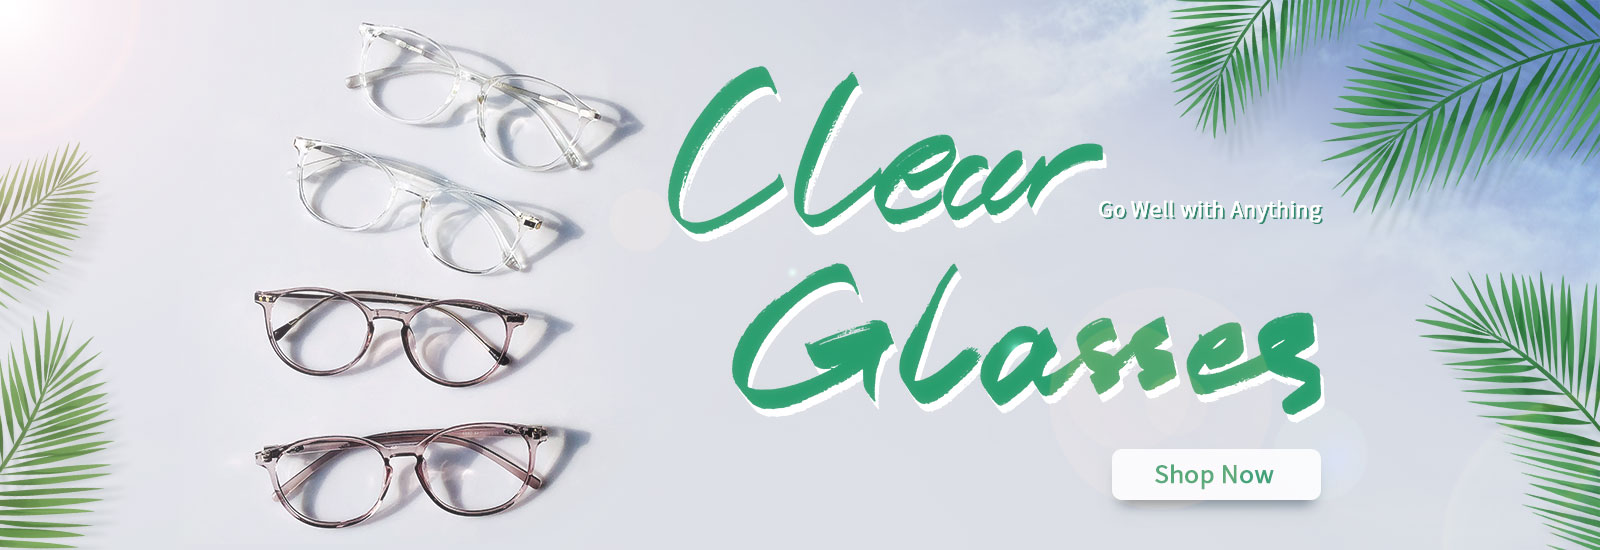 c37bbeb21 Firmoo.com - Your Preferred Online Eyewear Store - Glasses ...